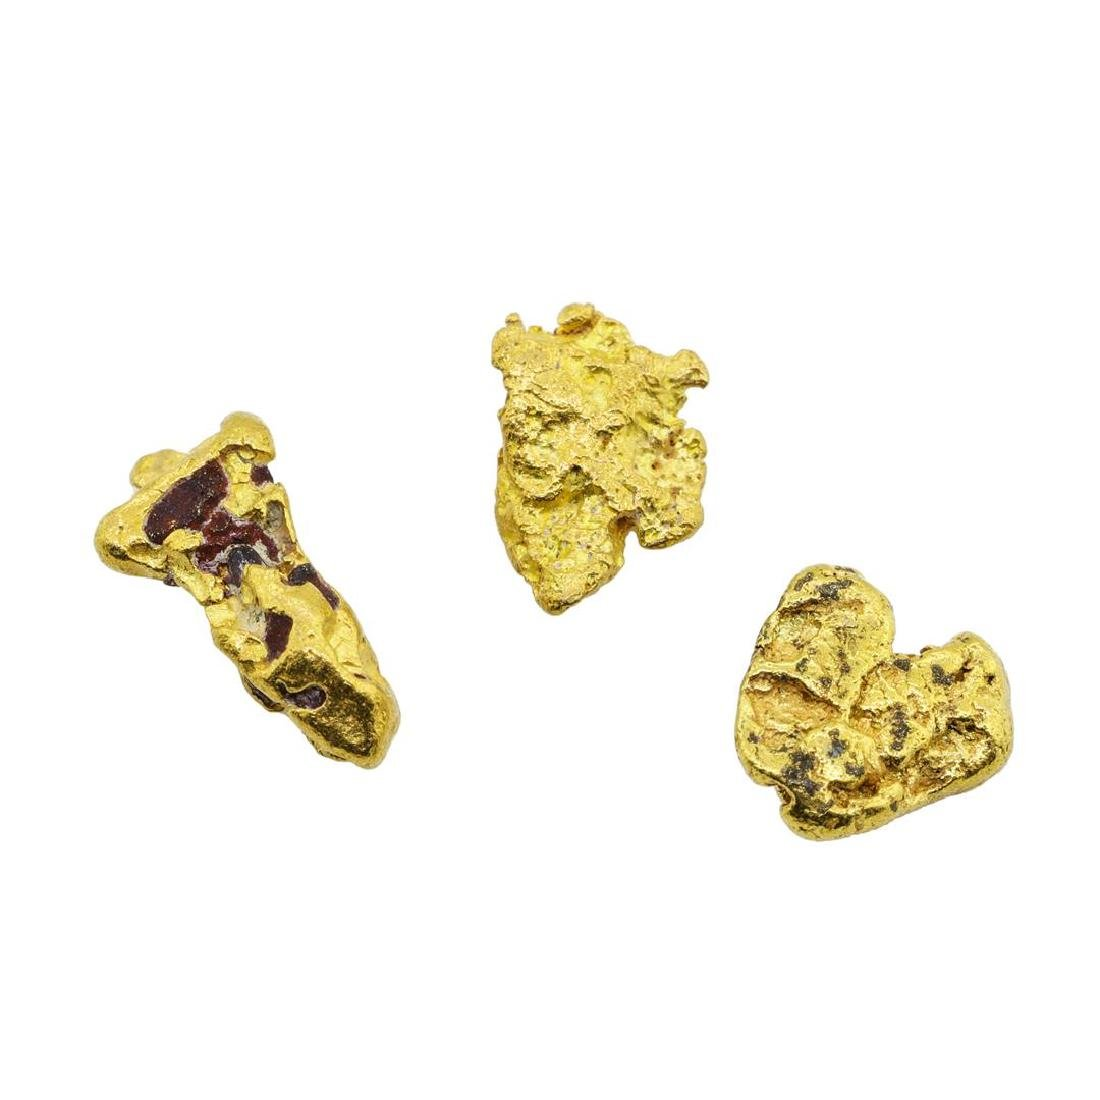 Lot of (3) Gold Nuggets 1.9 grams Total Weight